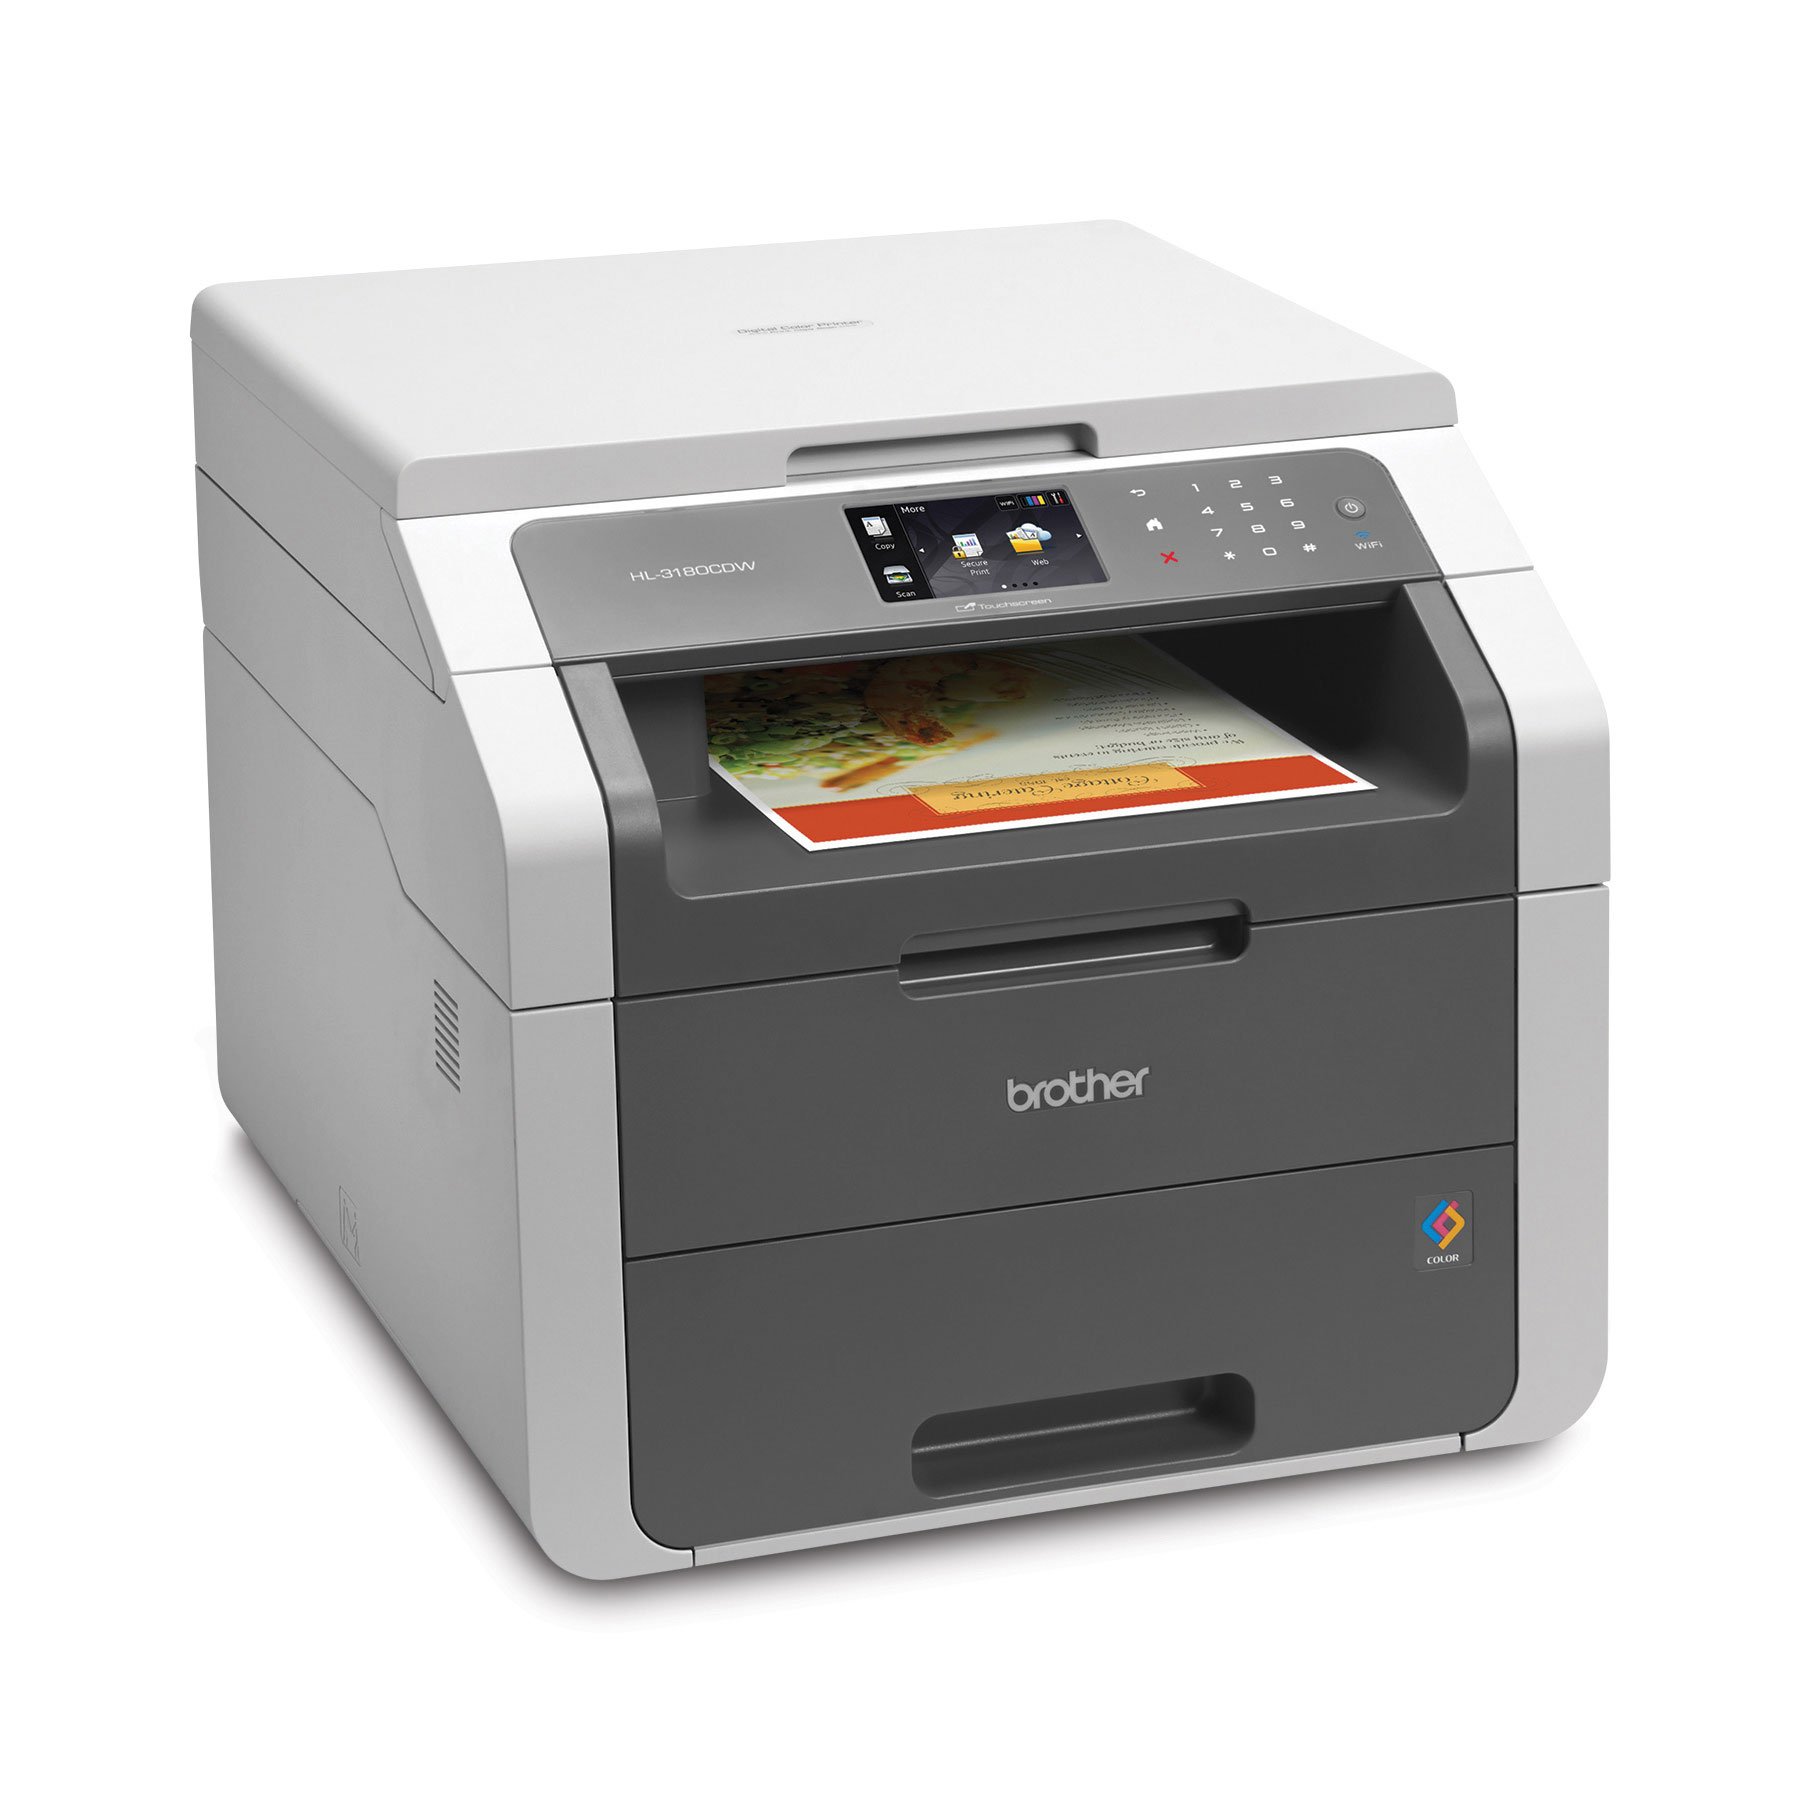 BROTHER HL-3180CDW DRIVER FREE